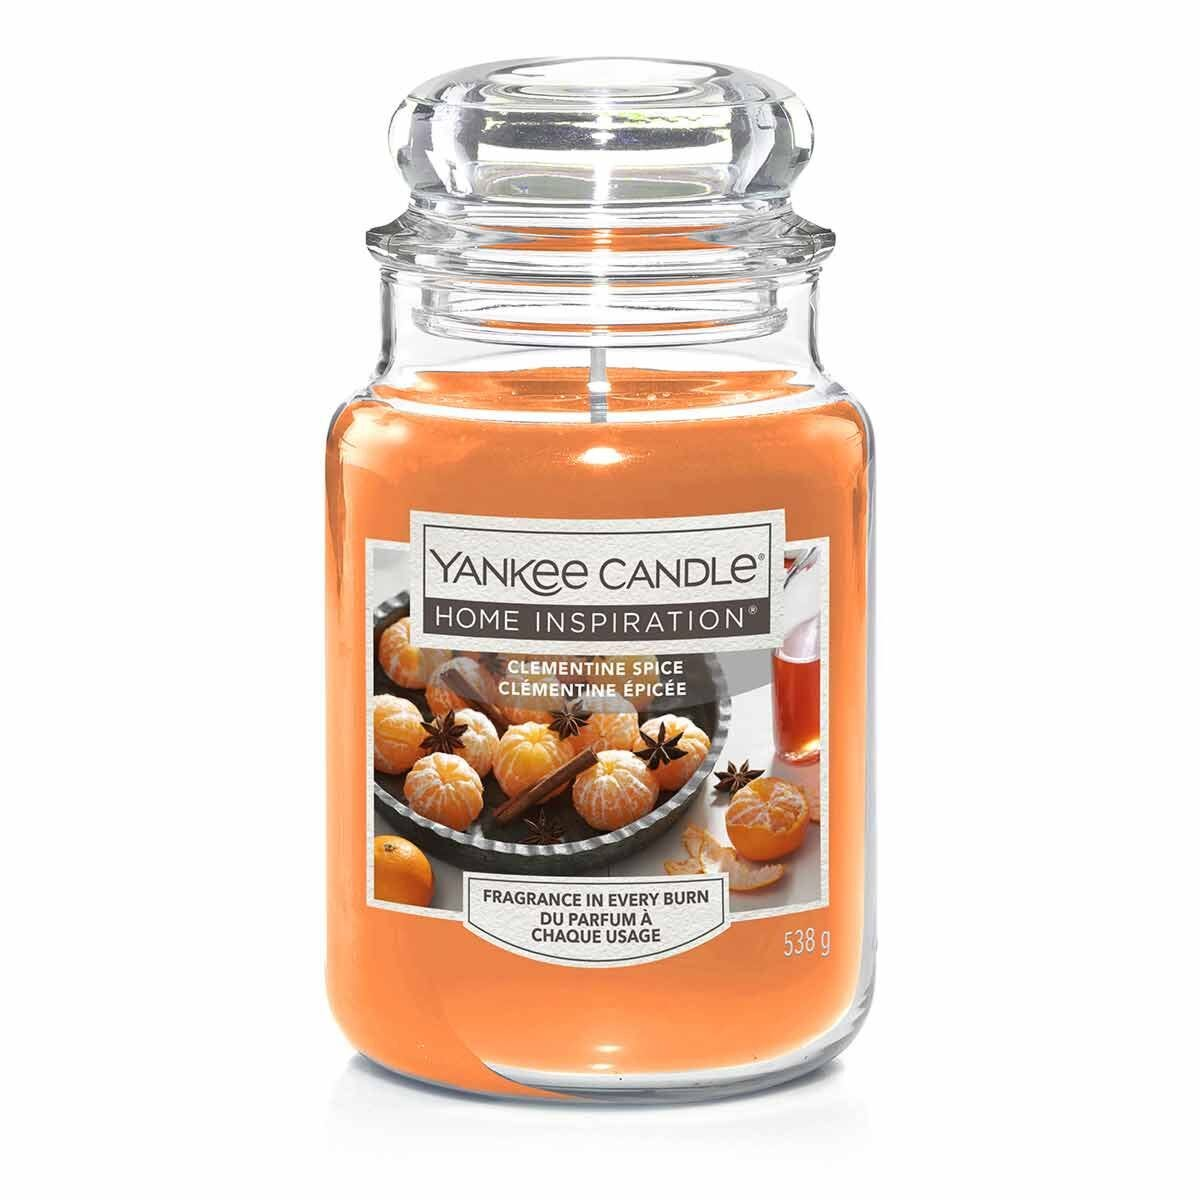 Yankee Candle Large Jar Clementine Spice